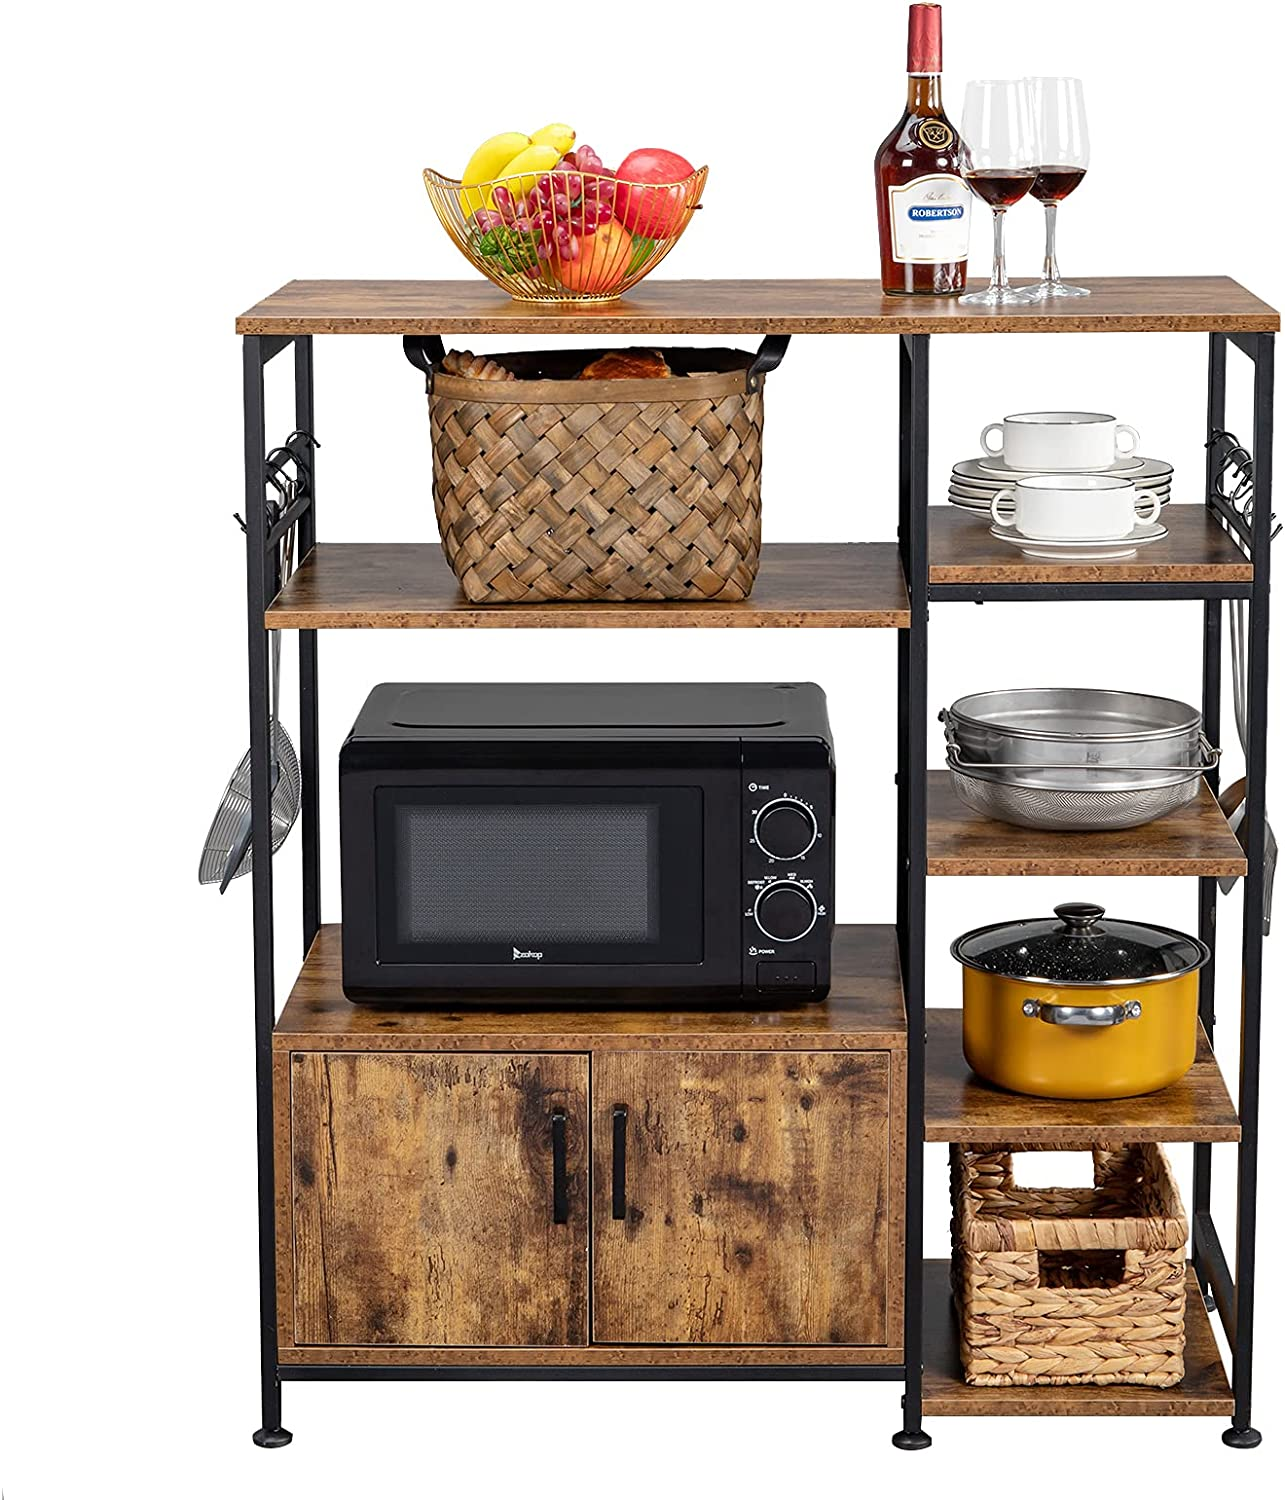 5-Tier Kitchen Bakers Rack Multiuse Oven Microwave Portland Mall Stand Cheap Storage